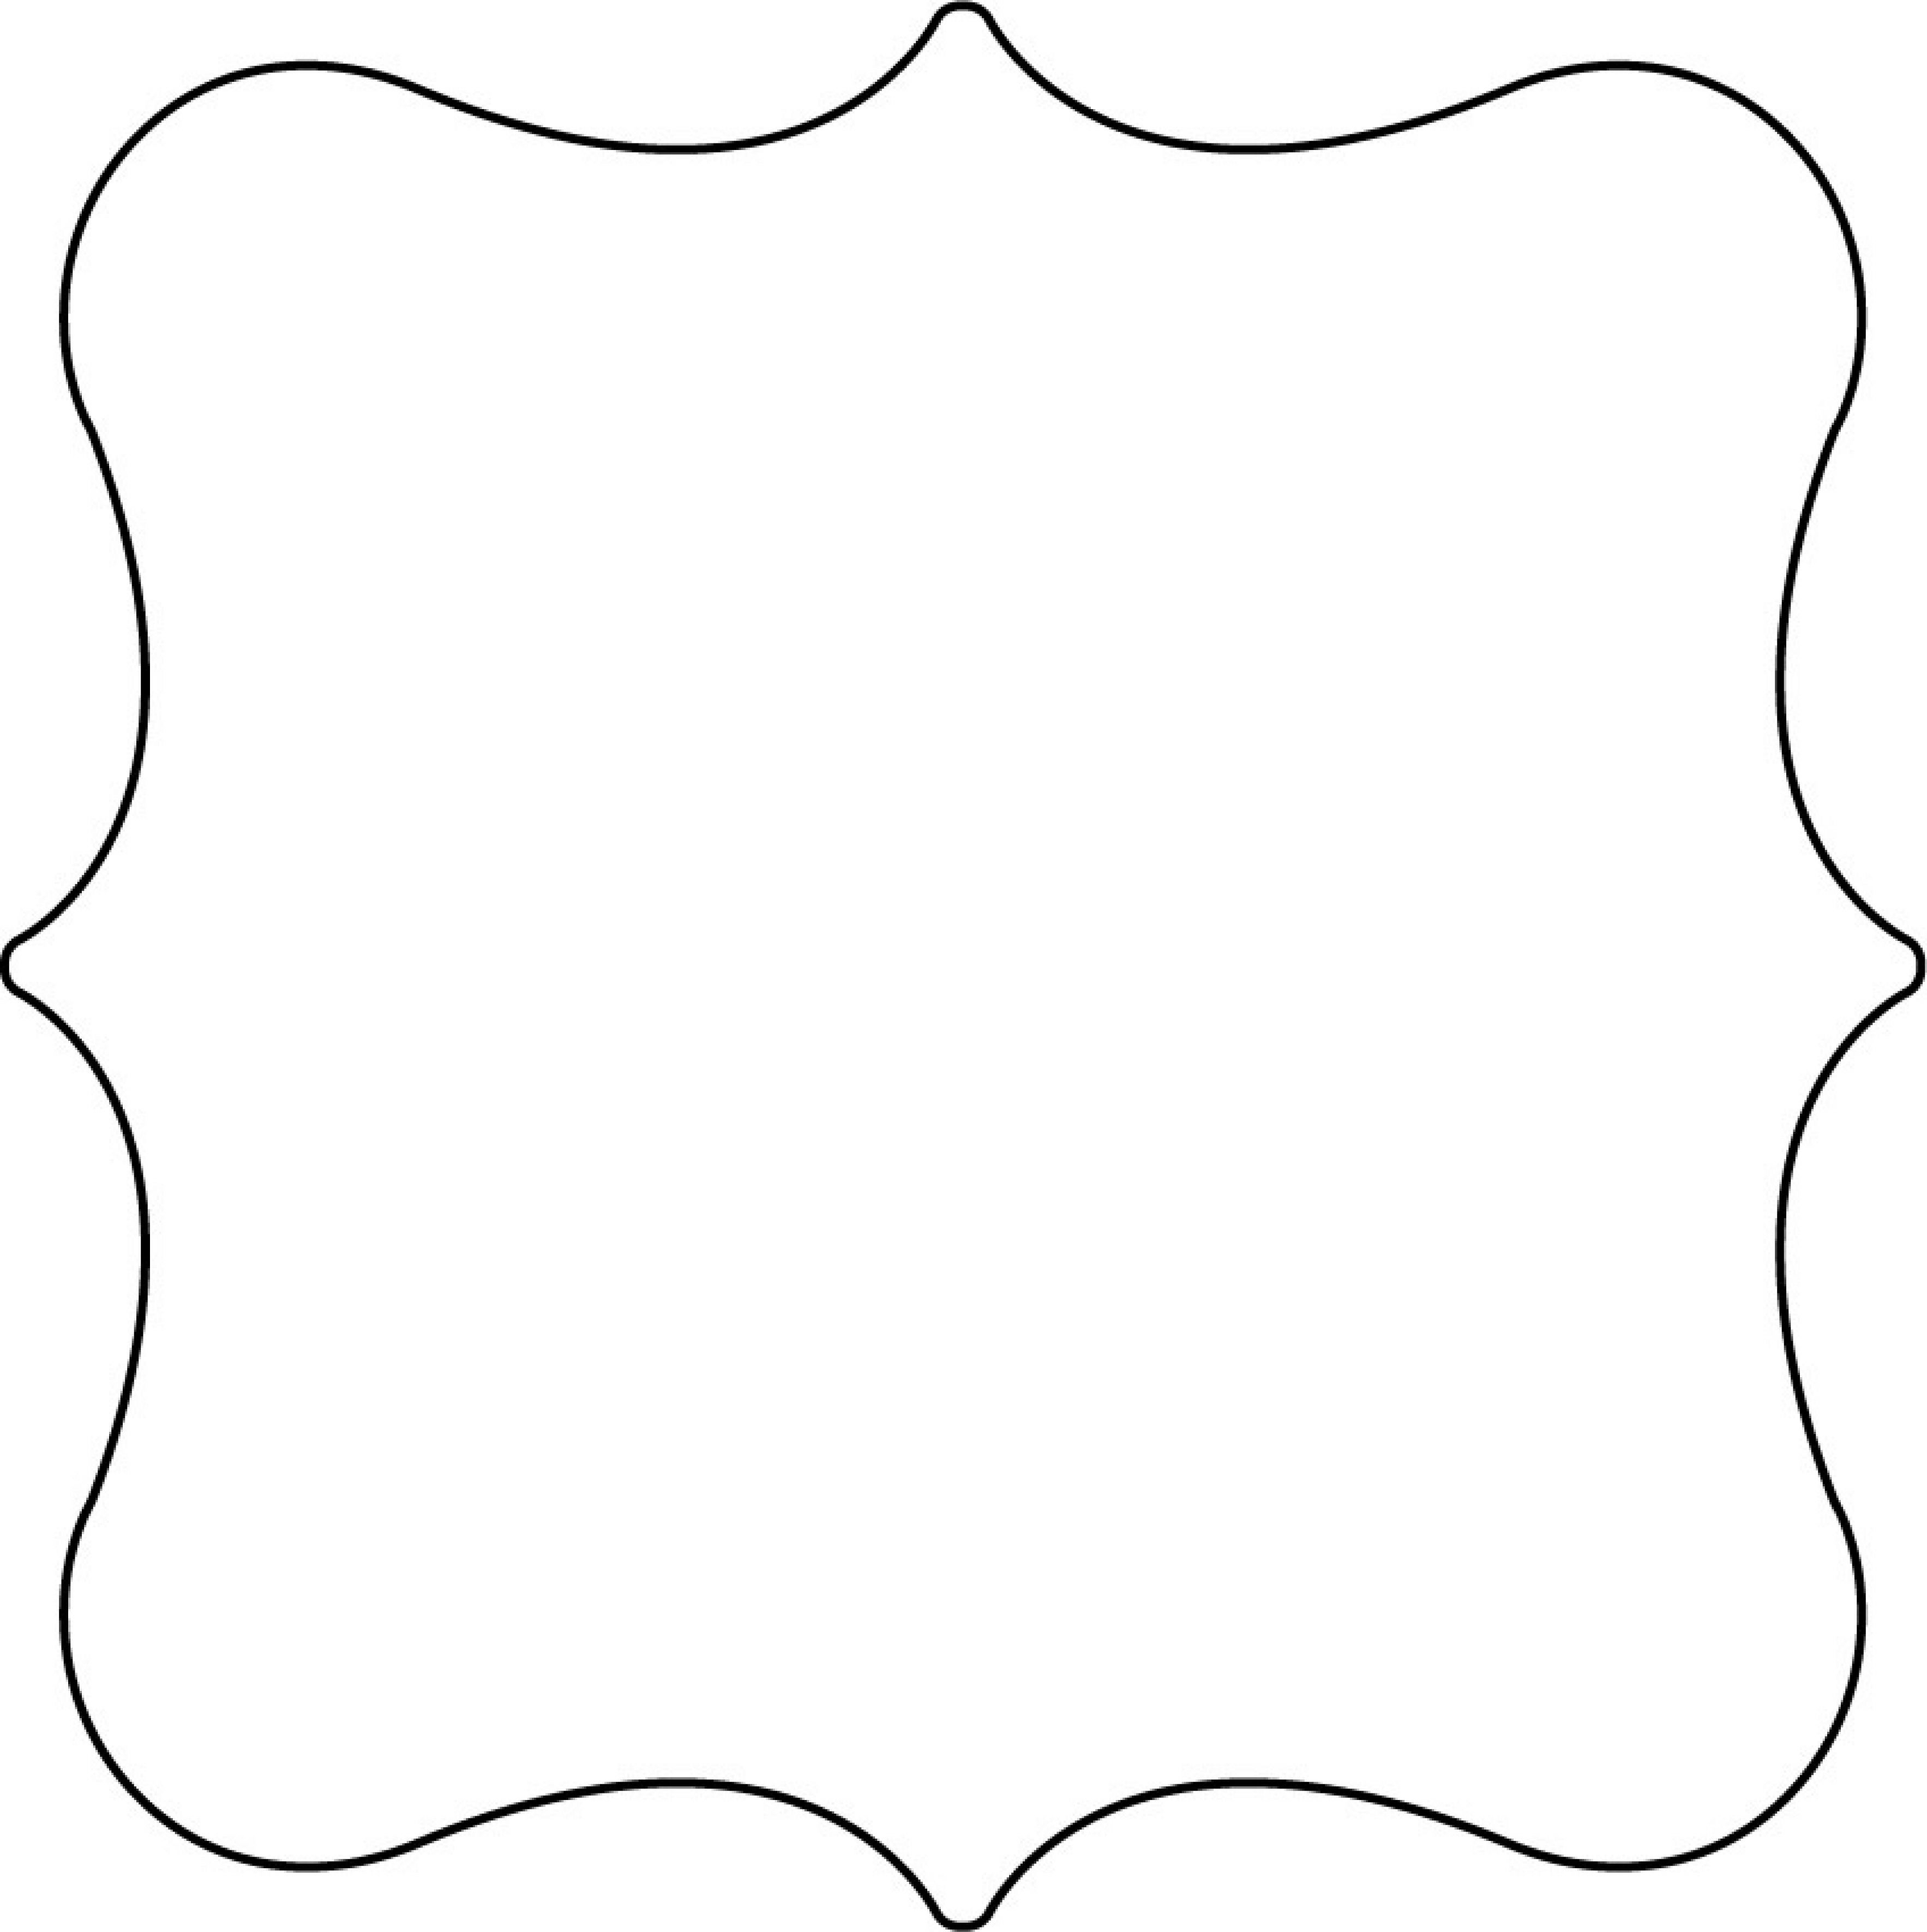 Cake Templates | Clear Scraps Xl Shapes | Cake Decorating - Free Shape Templates Printable